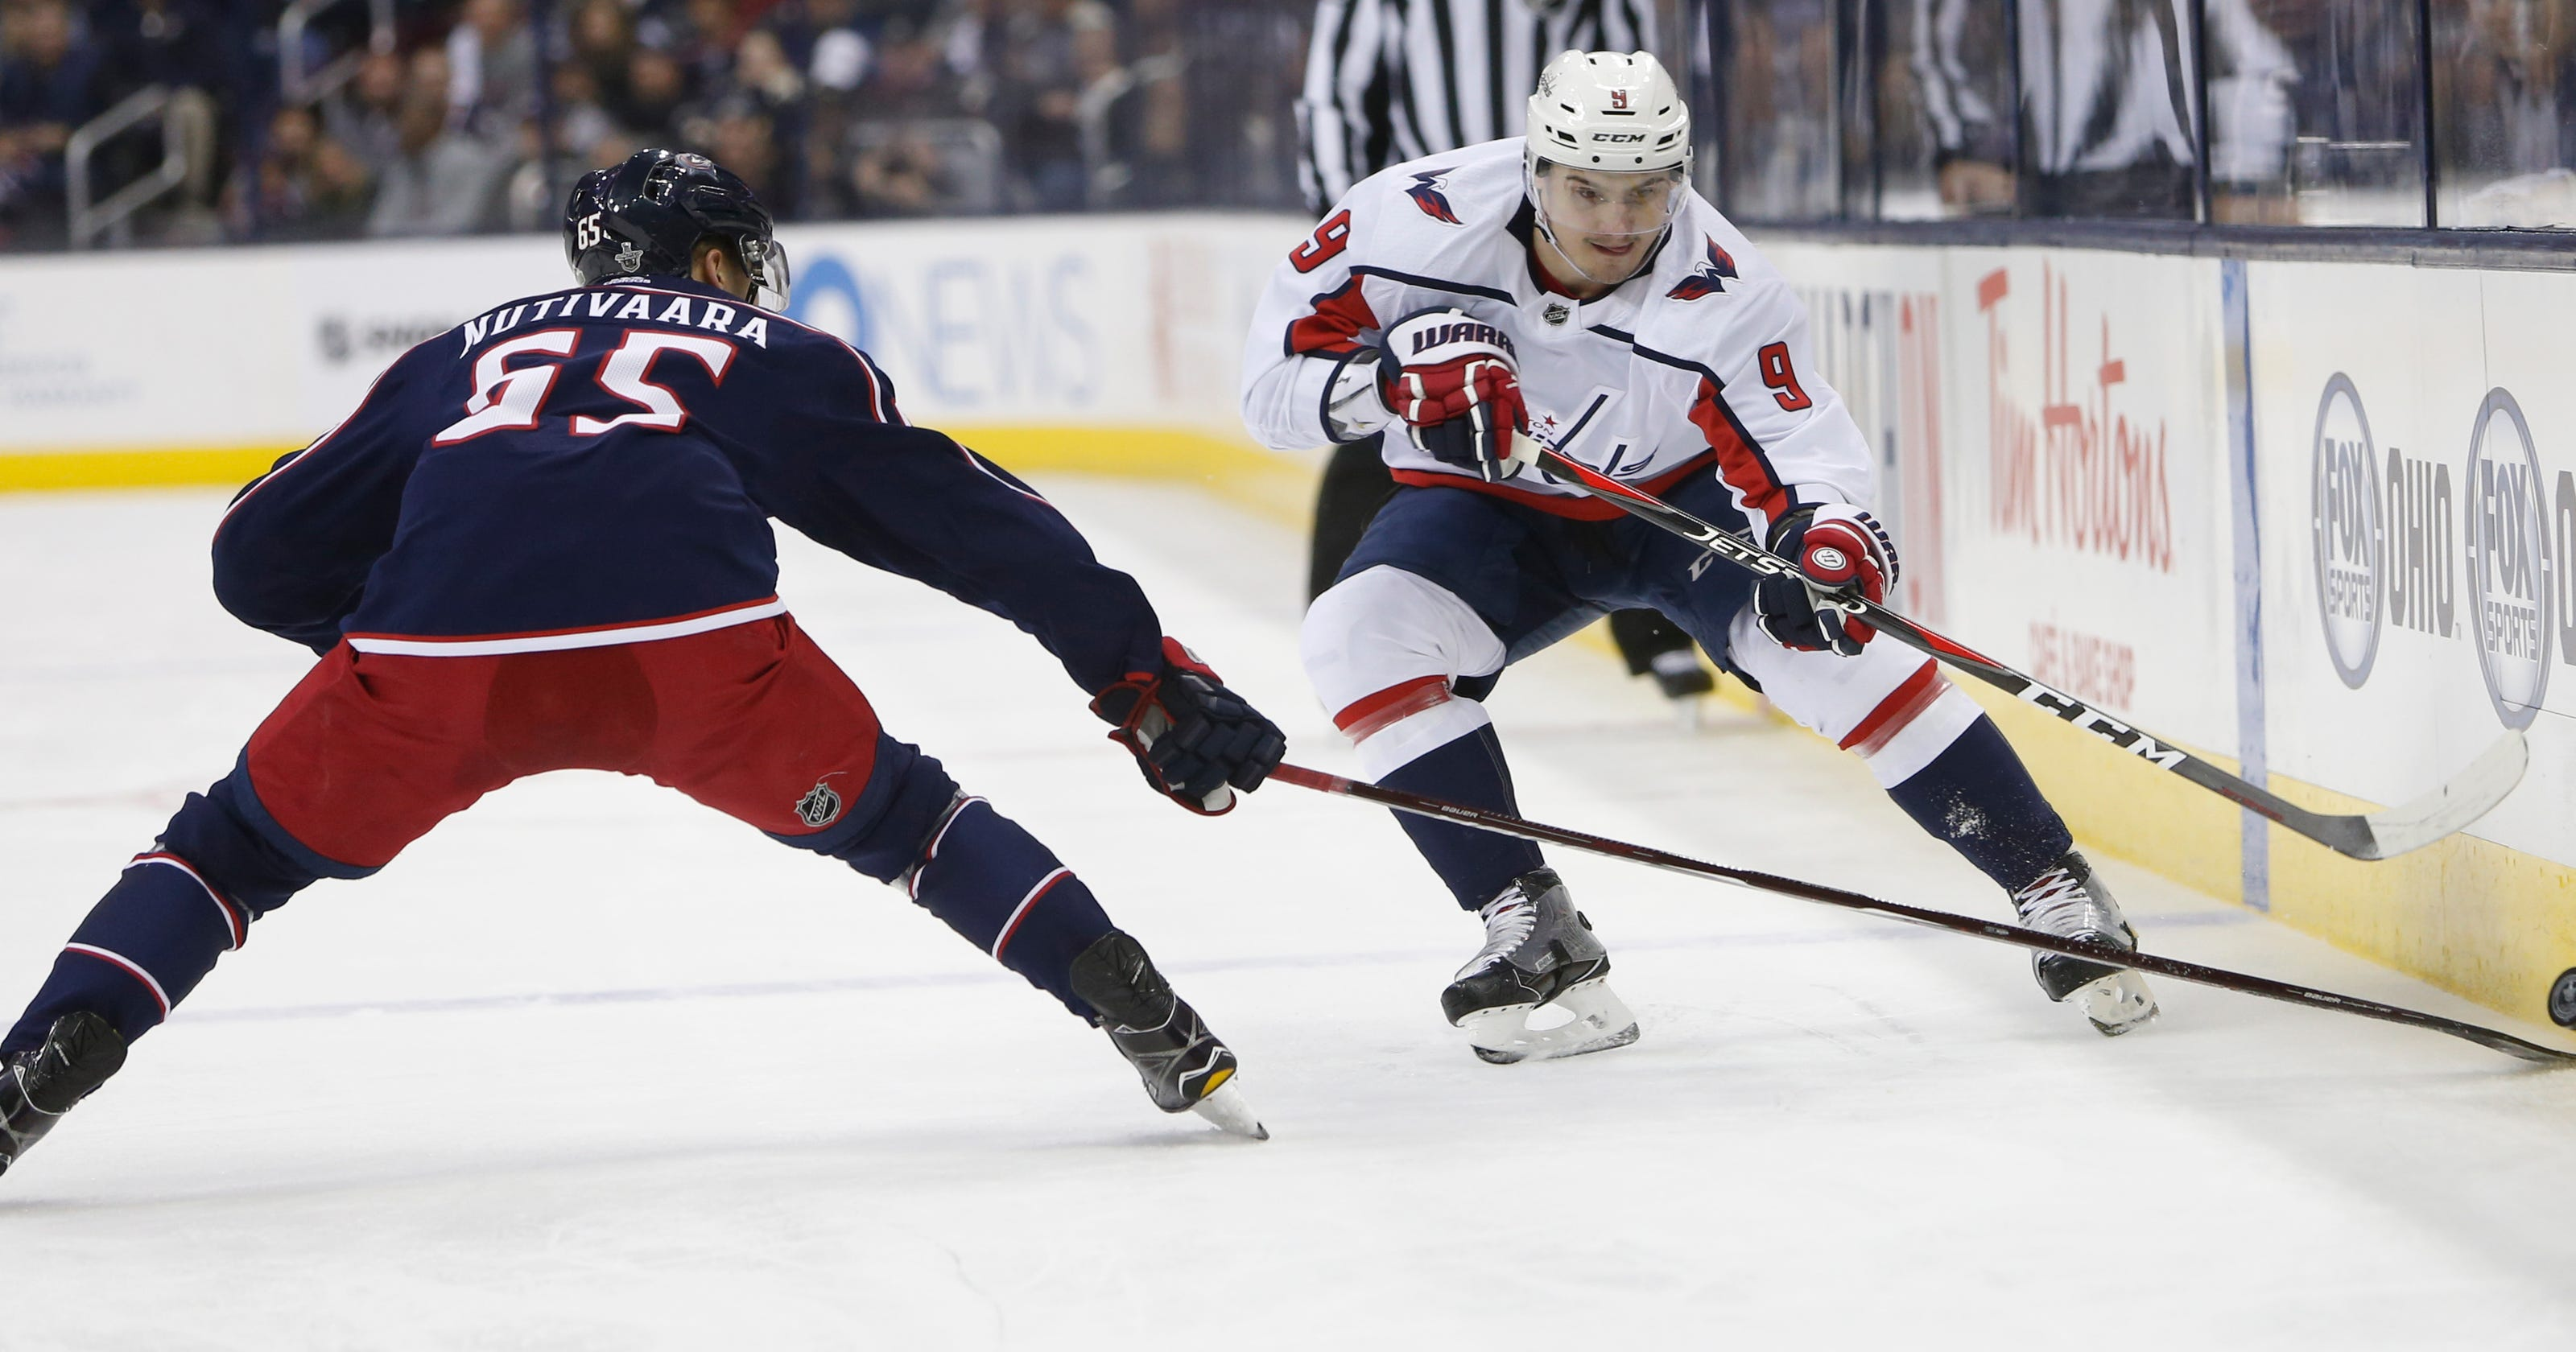 Caps top Blue Jackets 4-1 to even series at 2 games each 2b828367c